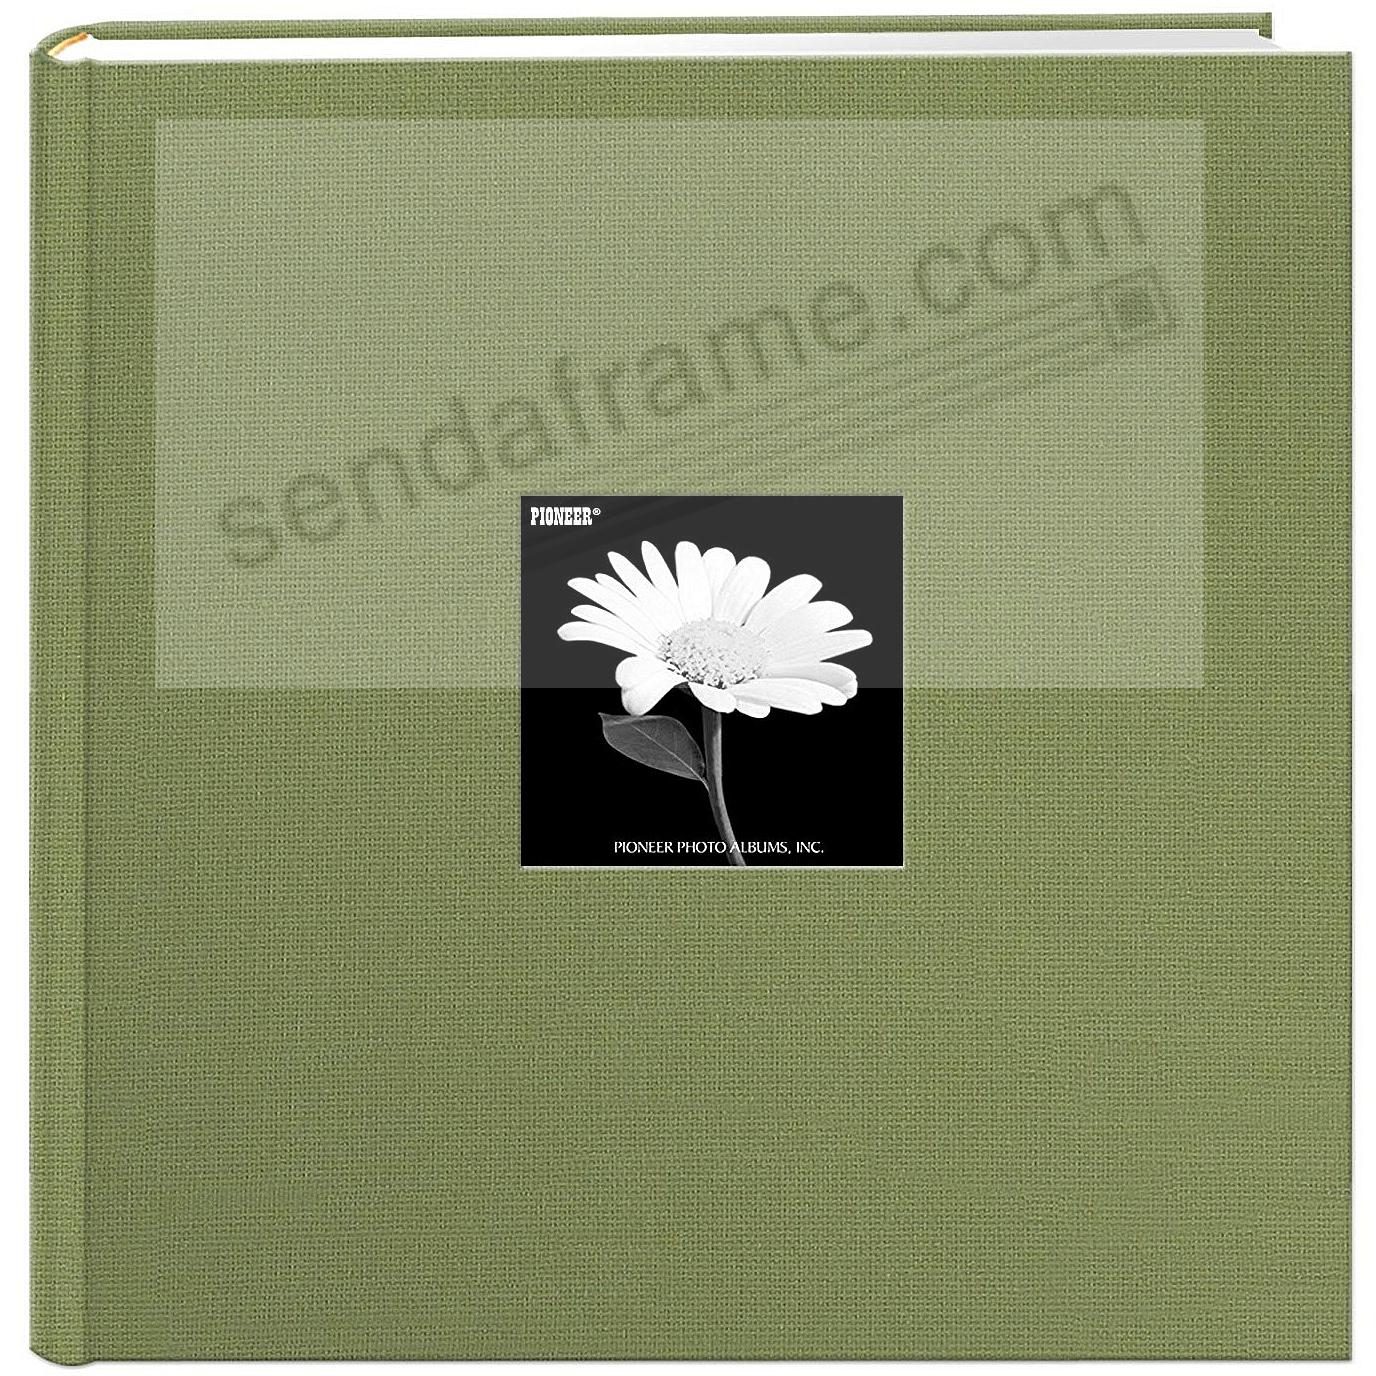 Sage-Green Cloth Frame Cover Album shows 10-at-a-time 500 pocket by Pioneer